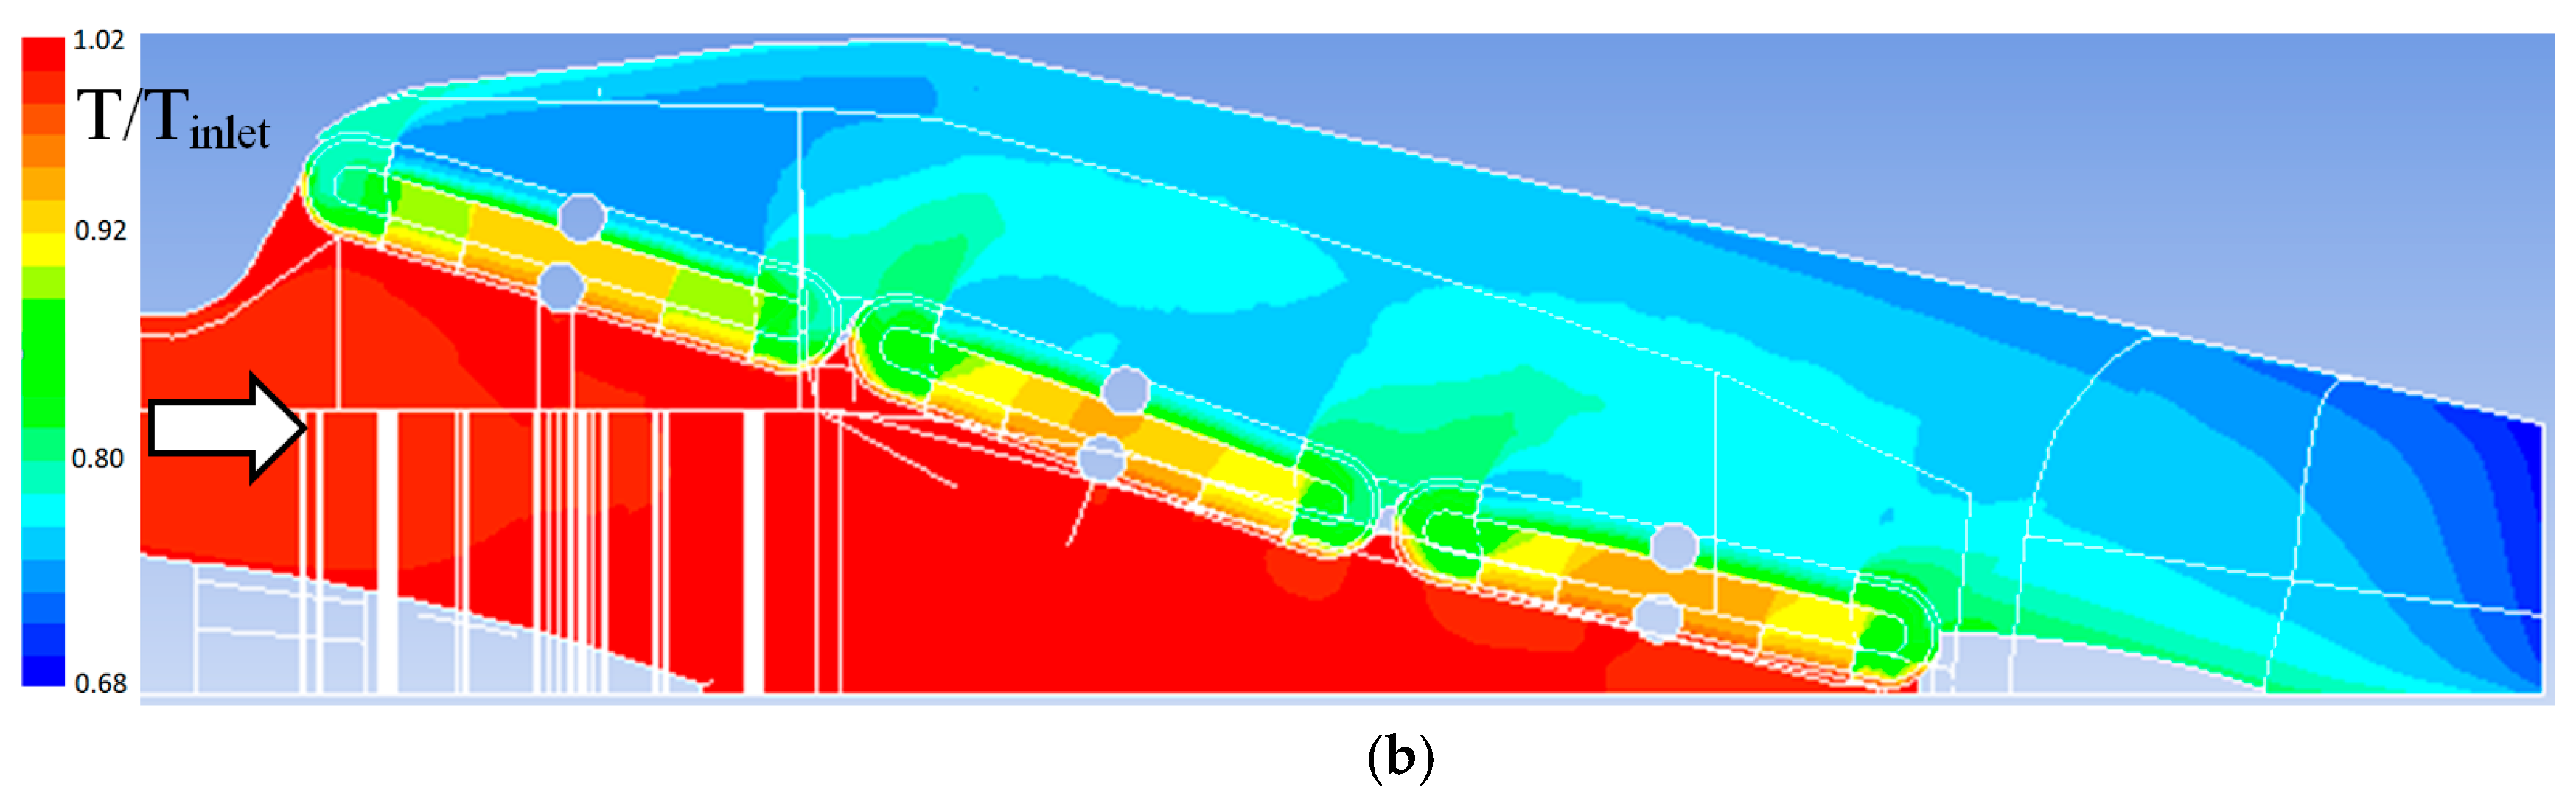 Aerospace | Free Full-Text | Optimization of Heat Exchangers for ...